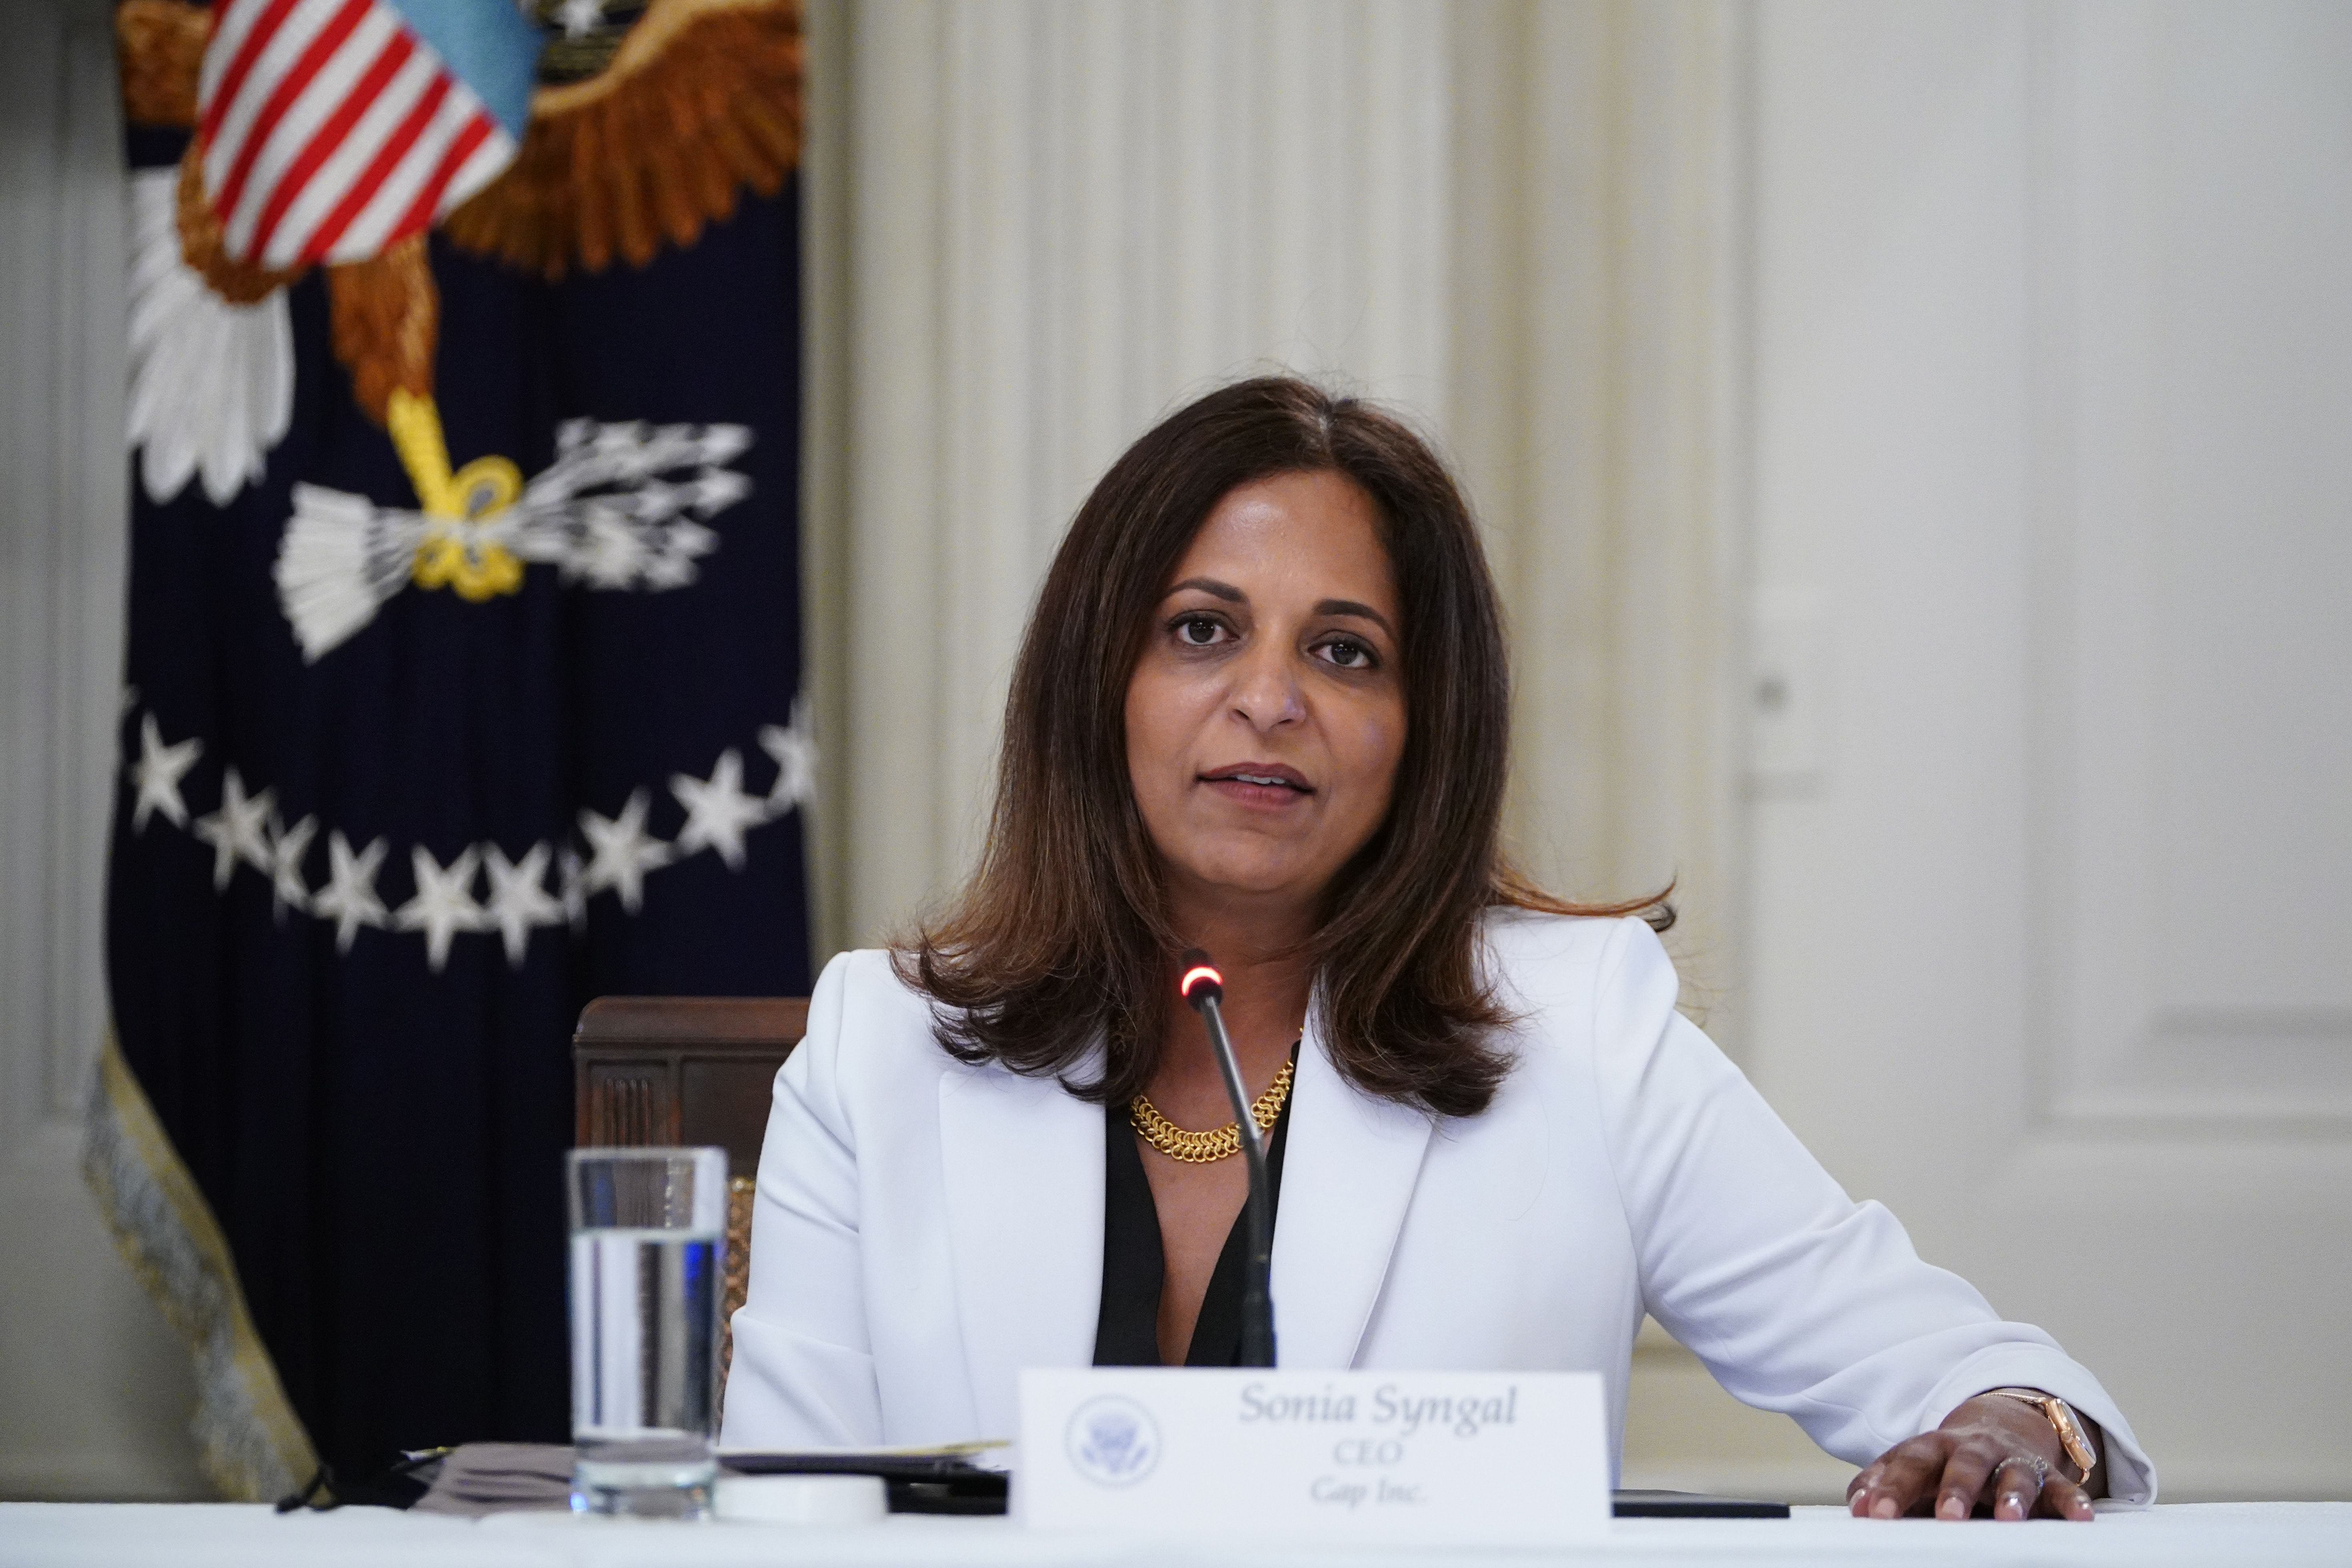 CEO of Gap Inc. Sonia Syngal speaks during a roundtable discussion with industry executives and US President Donald Trump on reopening the country, in the State Dining Room of the White House in Washington, DC on May 29, 2020. (Photo by MANDEL NGAN / AFP) (Photo by MANDEL NGAN/AFP via Getty Images)